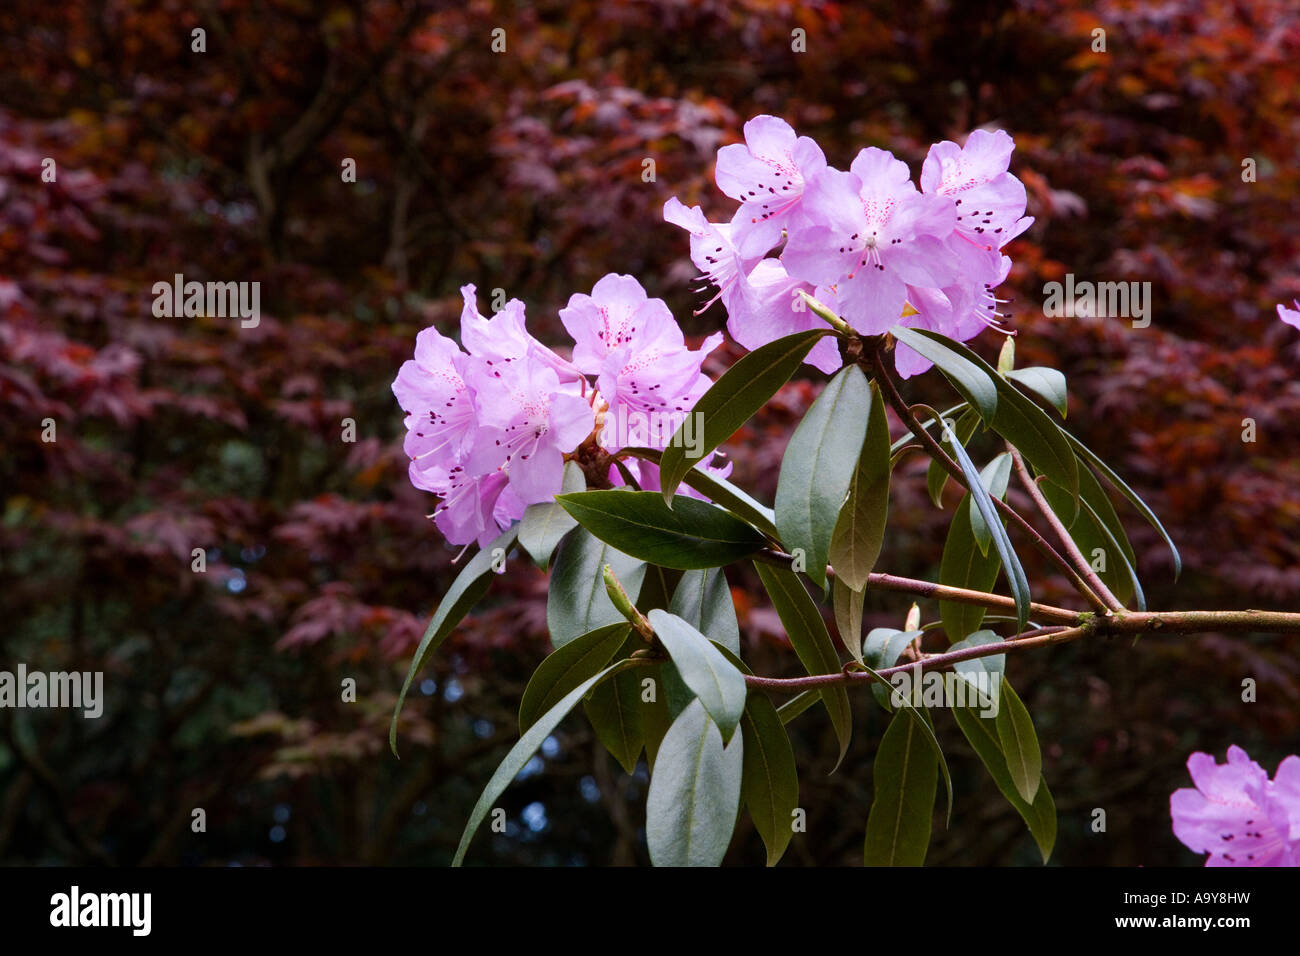 rhododendron bright pink purple flowers in bloom exploding from foliage against a deep dark russet coloured shrubbery - Stock Image